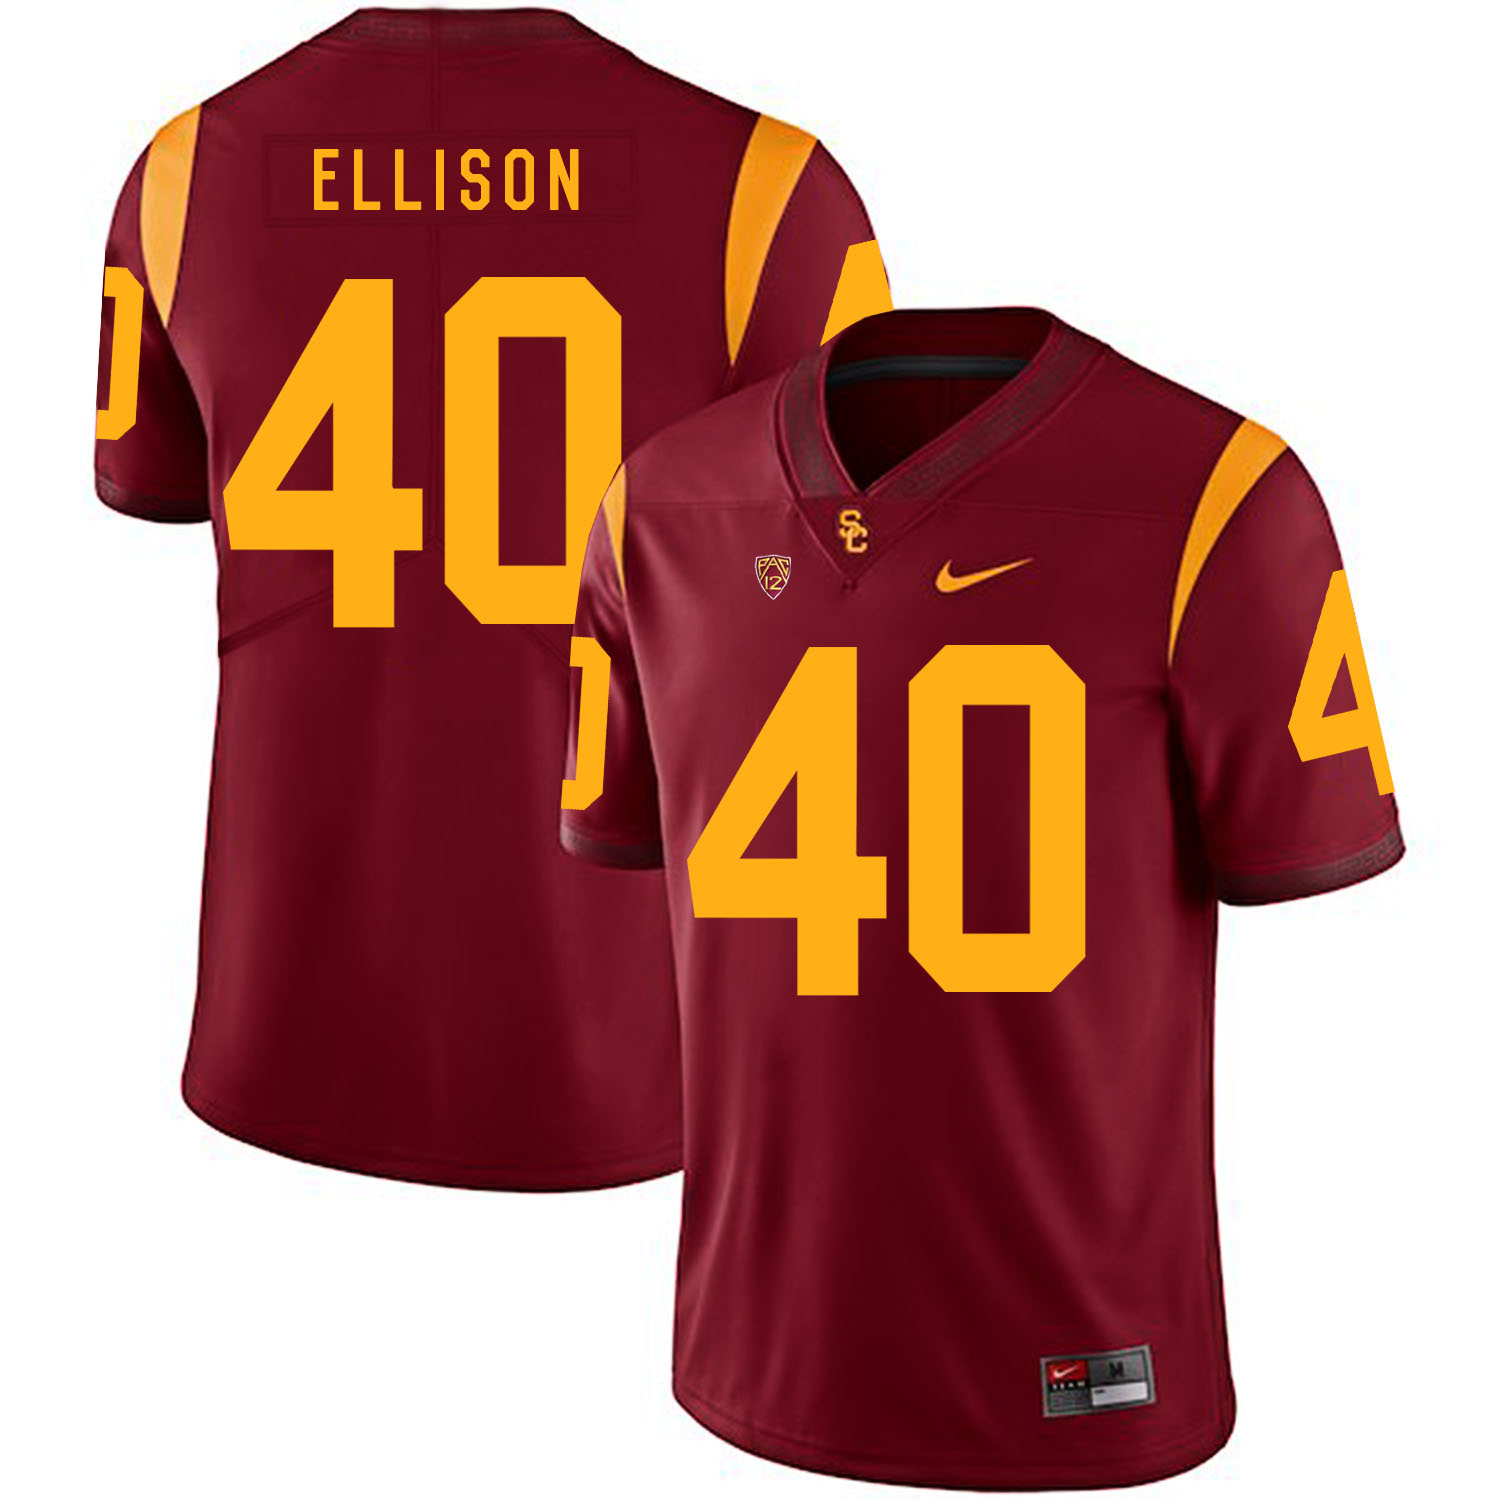 USC Trojans 40 Rhett Ellison Red College Football Jersey